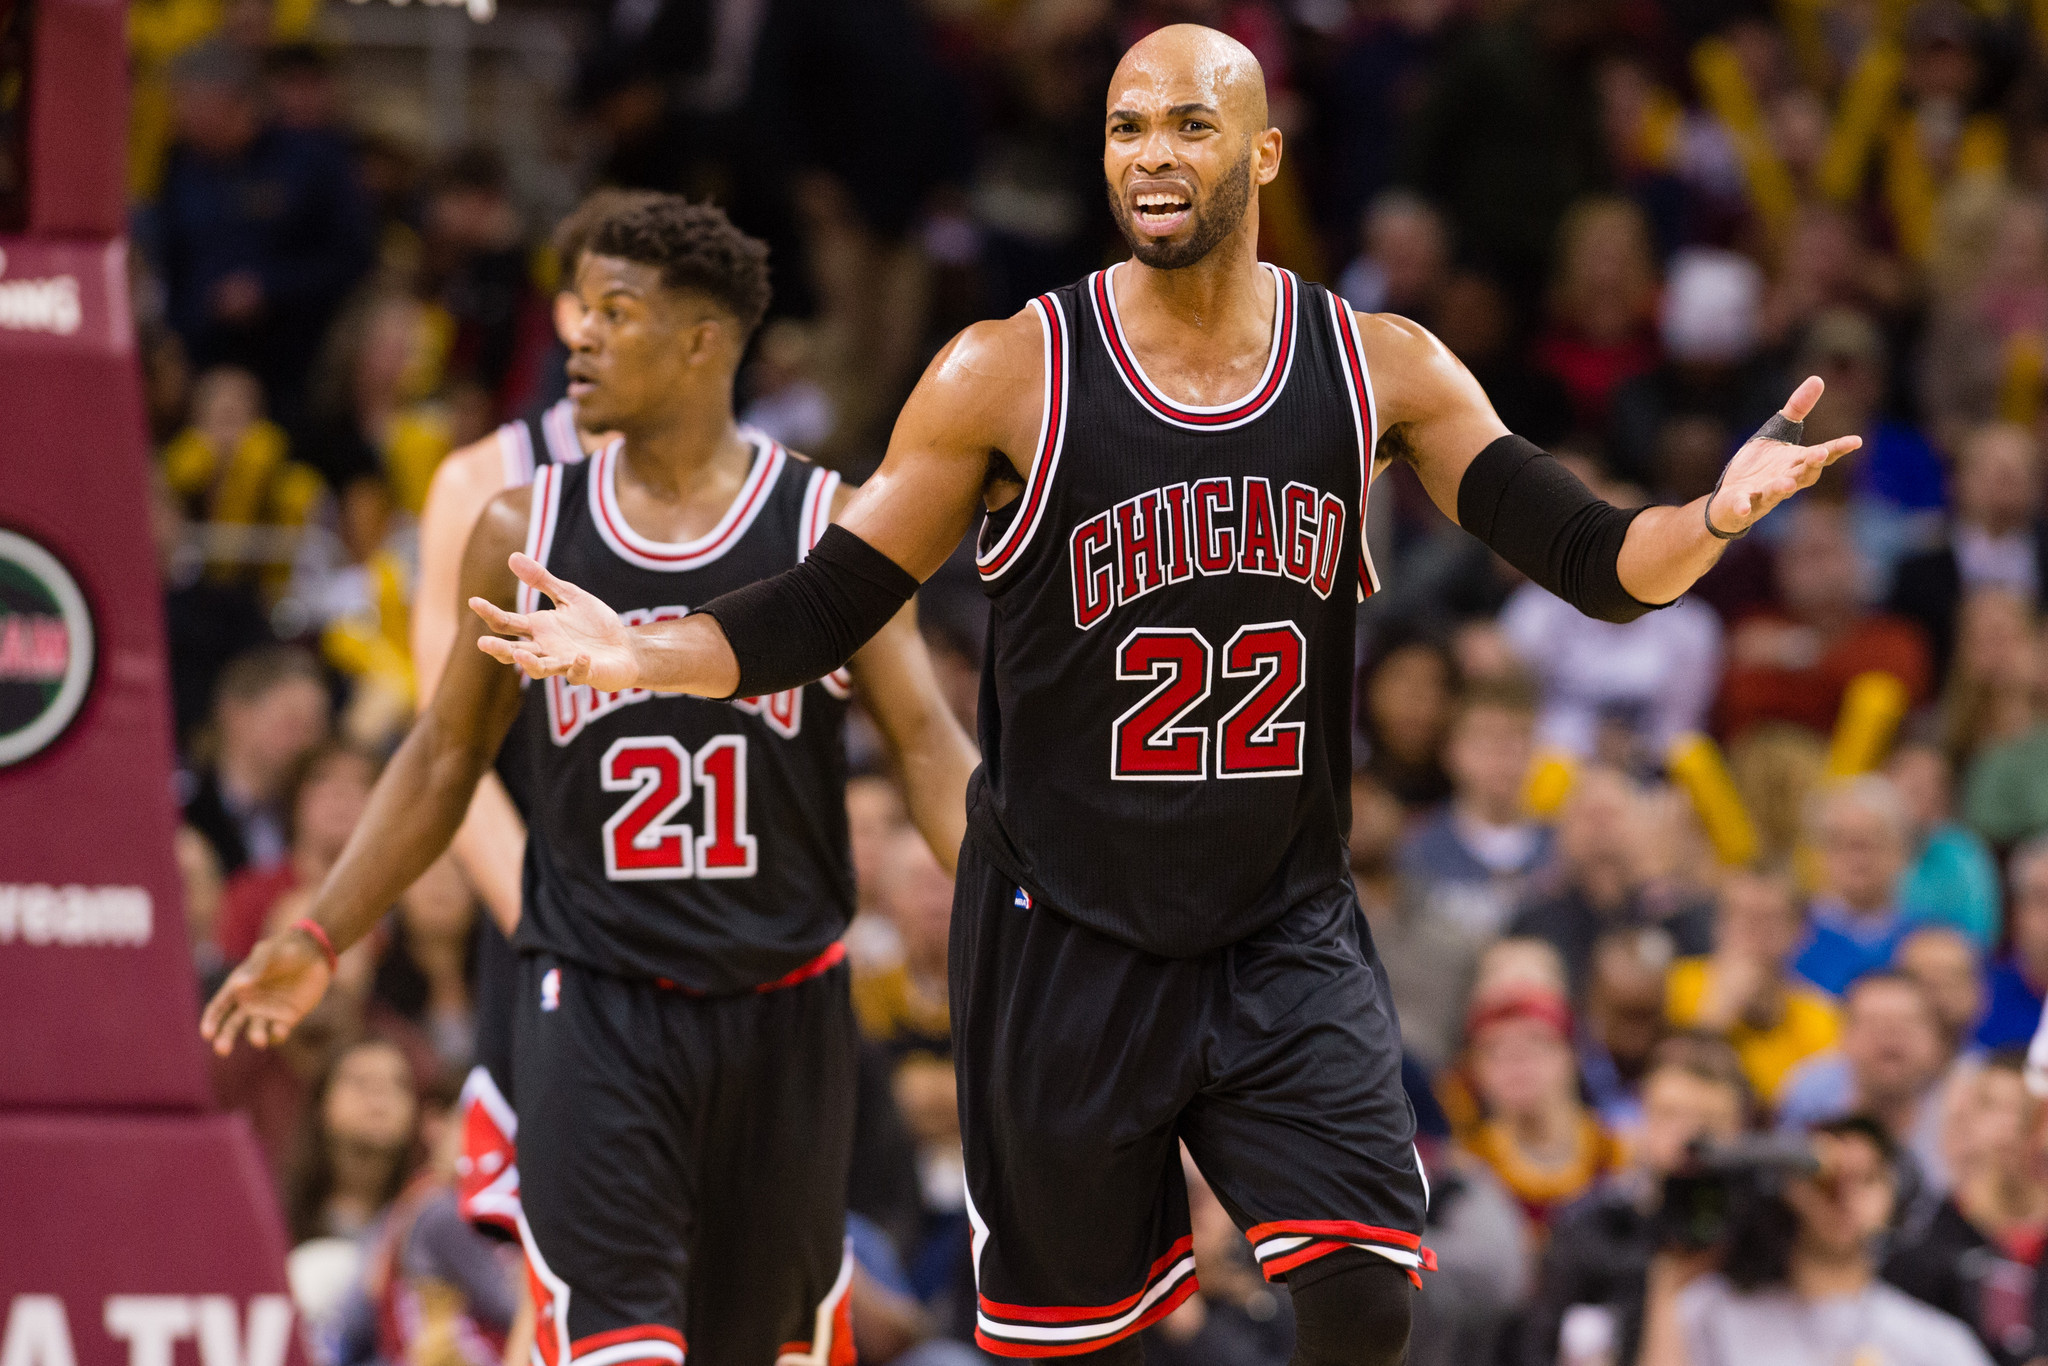 c501dbfb926c Derrick Rose frustrated after Bulls embarrassed in Cleveland ...